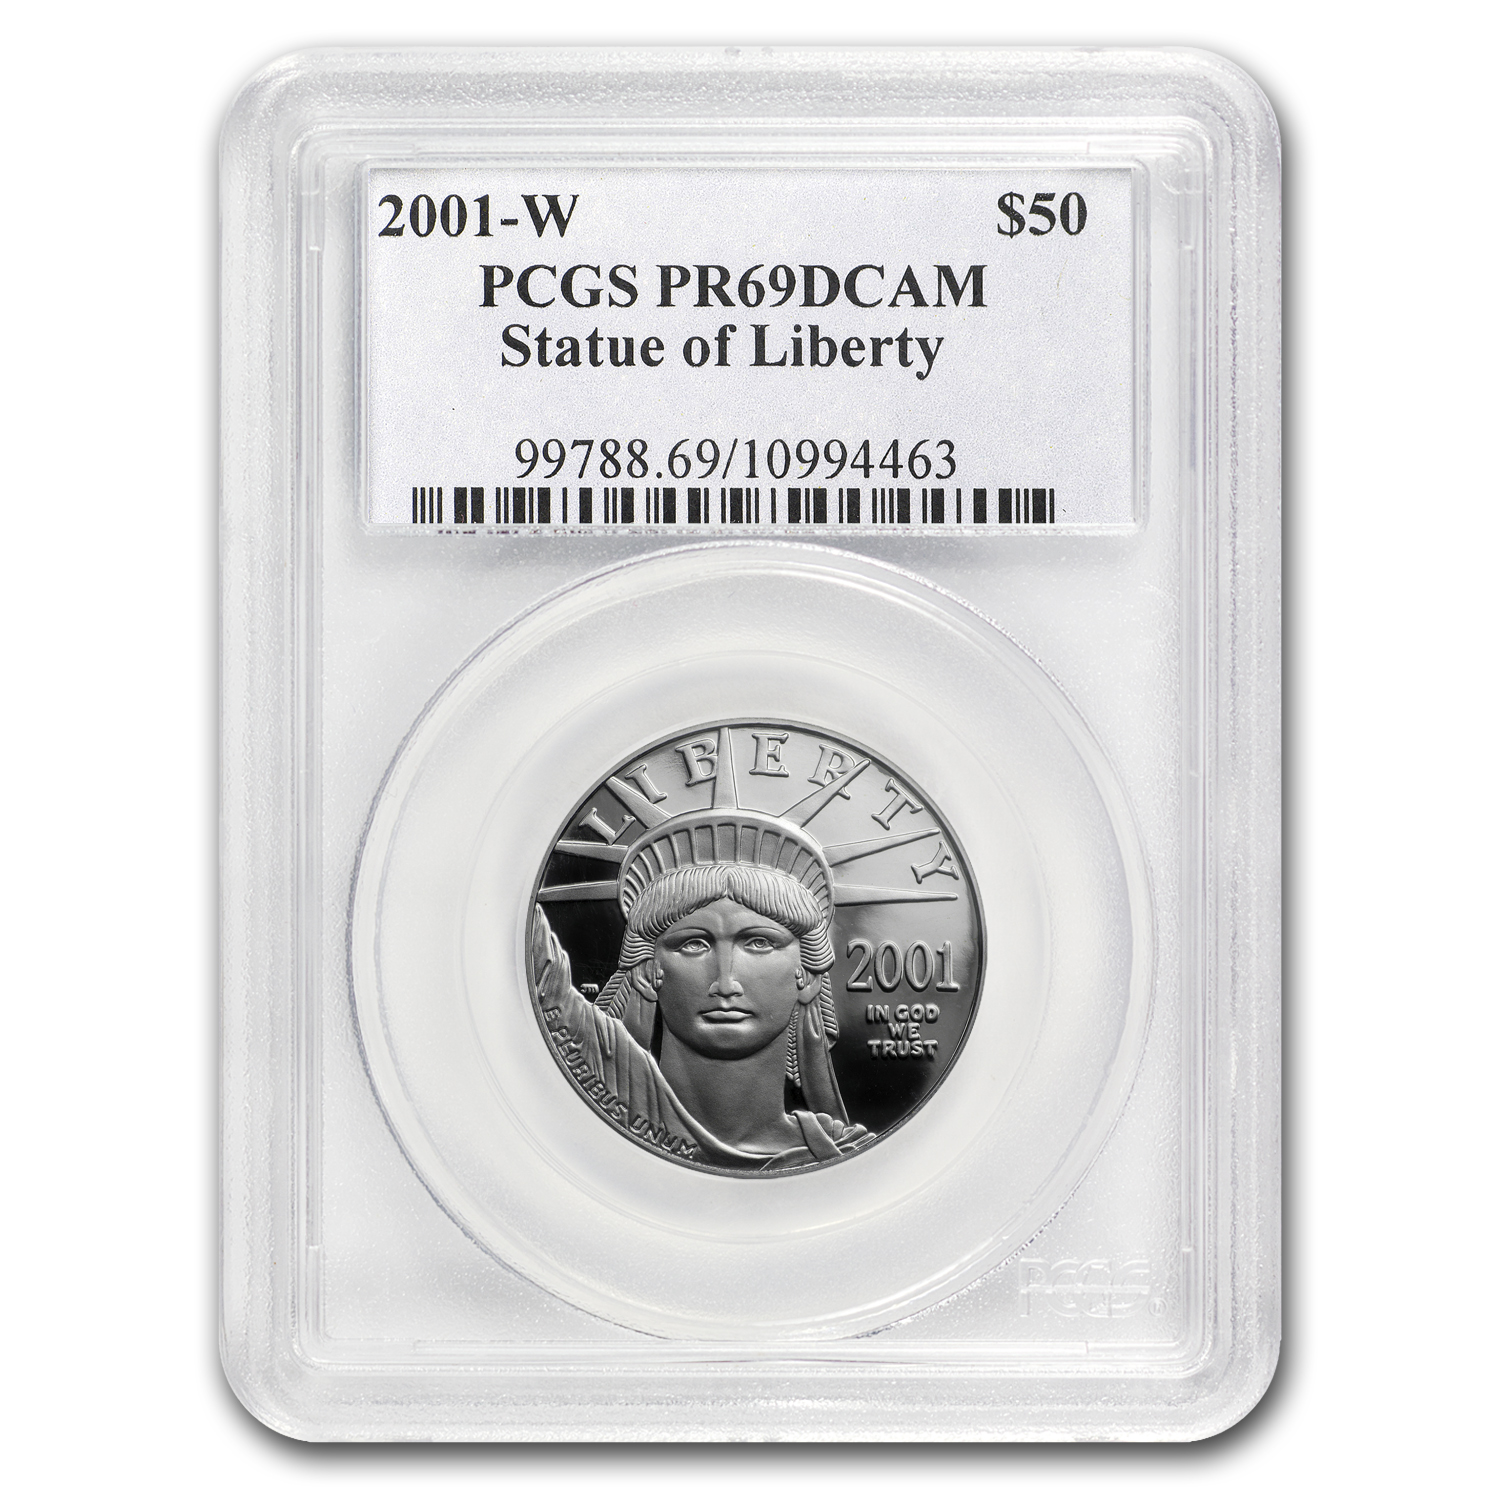 2001-W 1/2 oz Proof Platinum American Eagle PR-69 PCGS